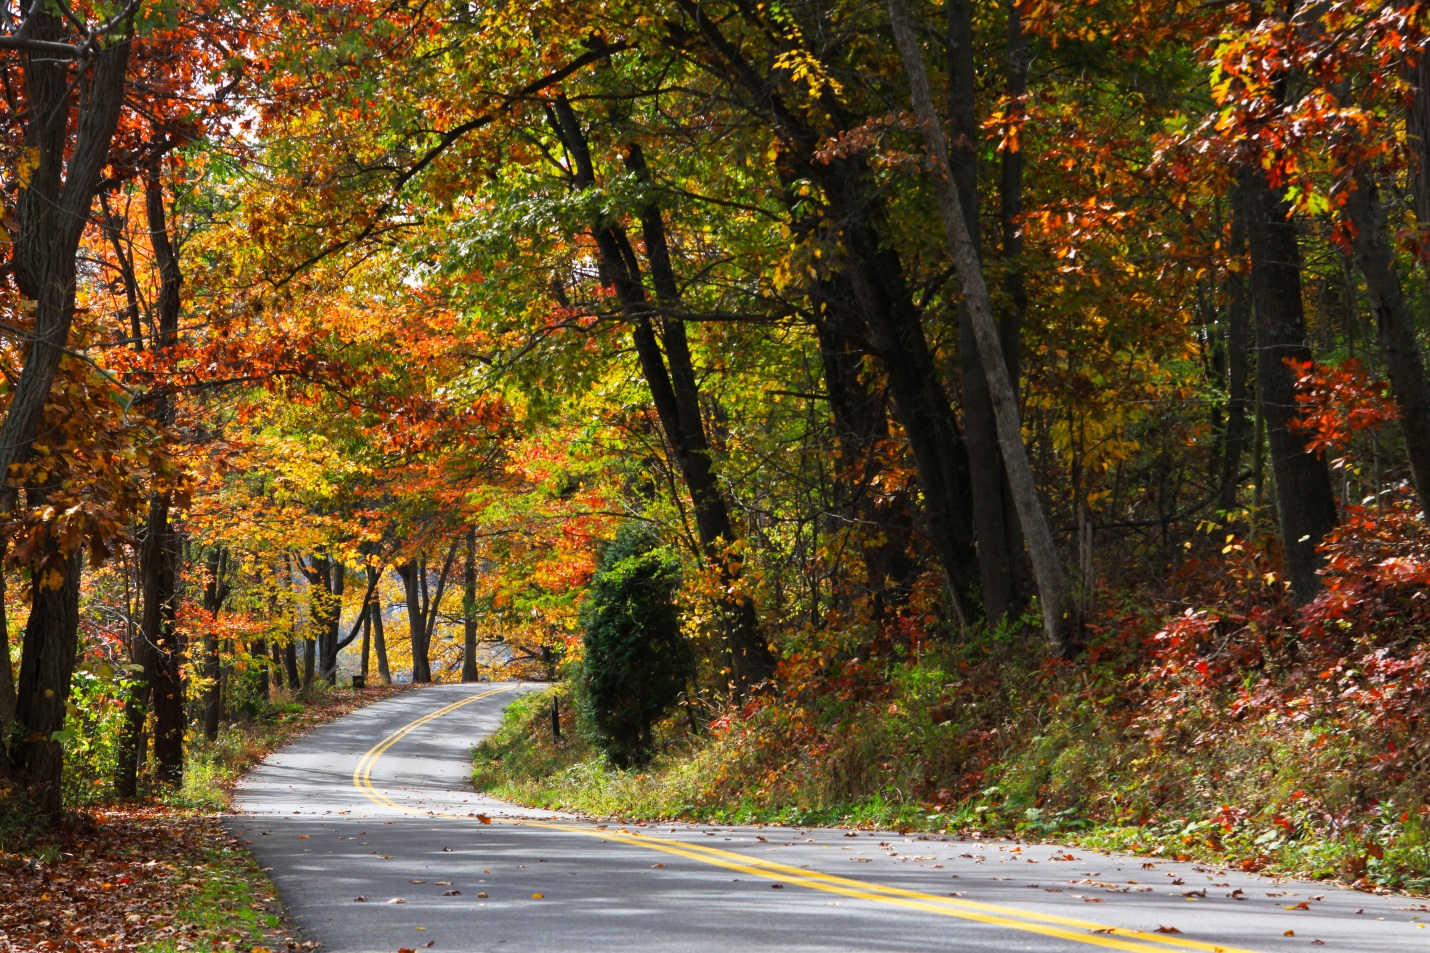 Fall Foliage along the Mountain Maryland Scenic Byway